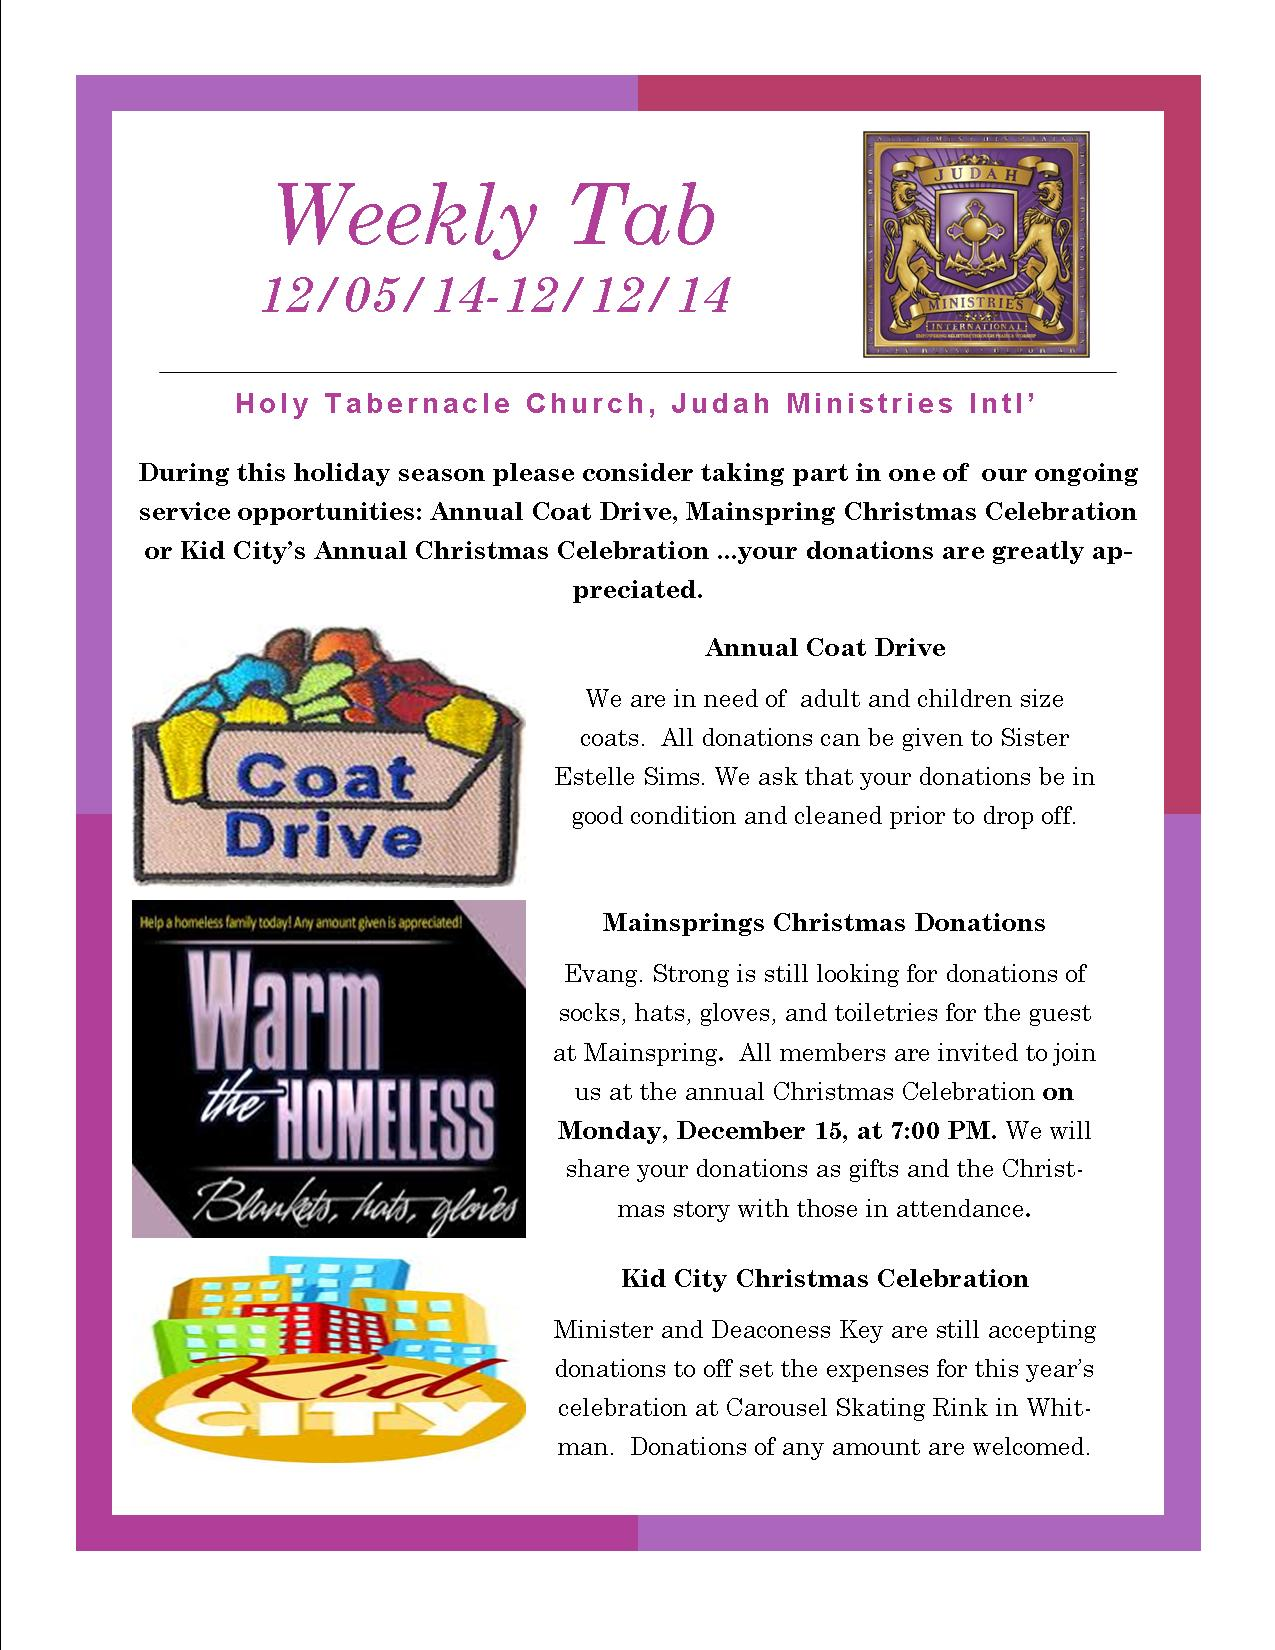 Weekly Tab 12.05.14 page 2